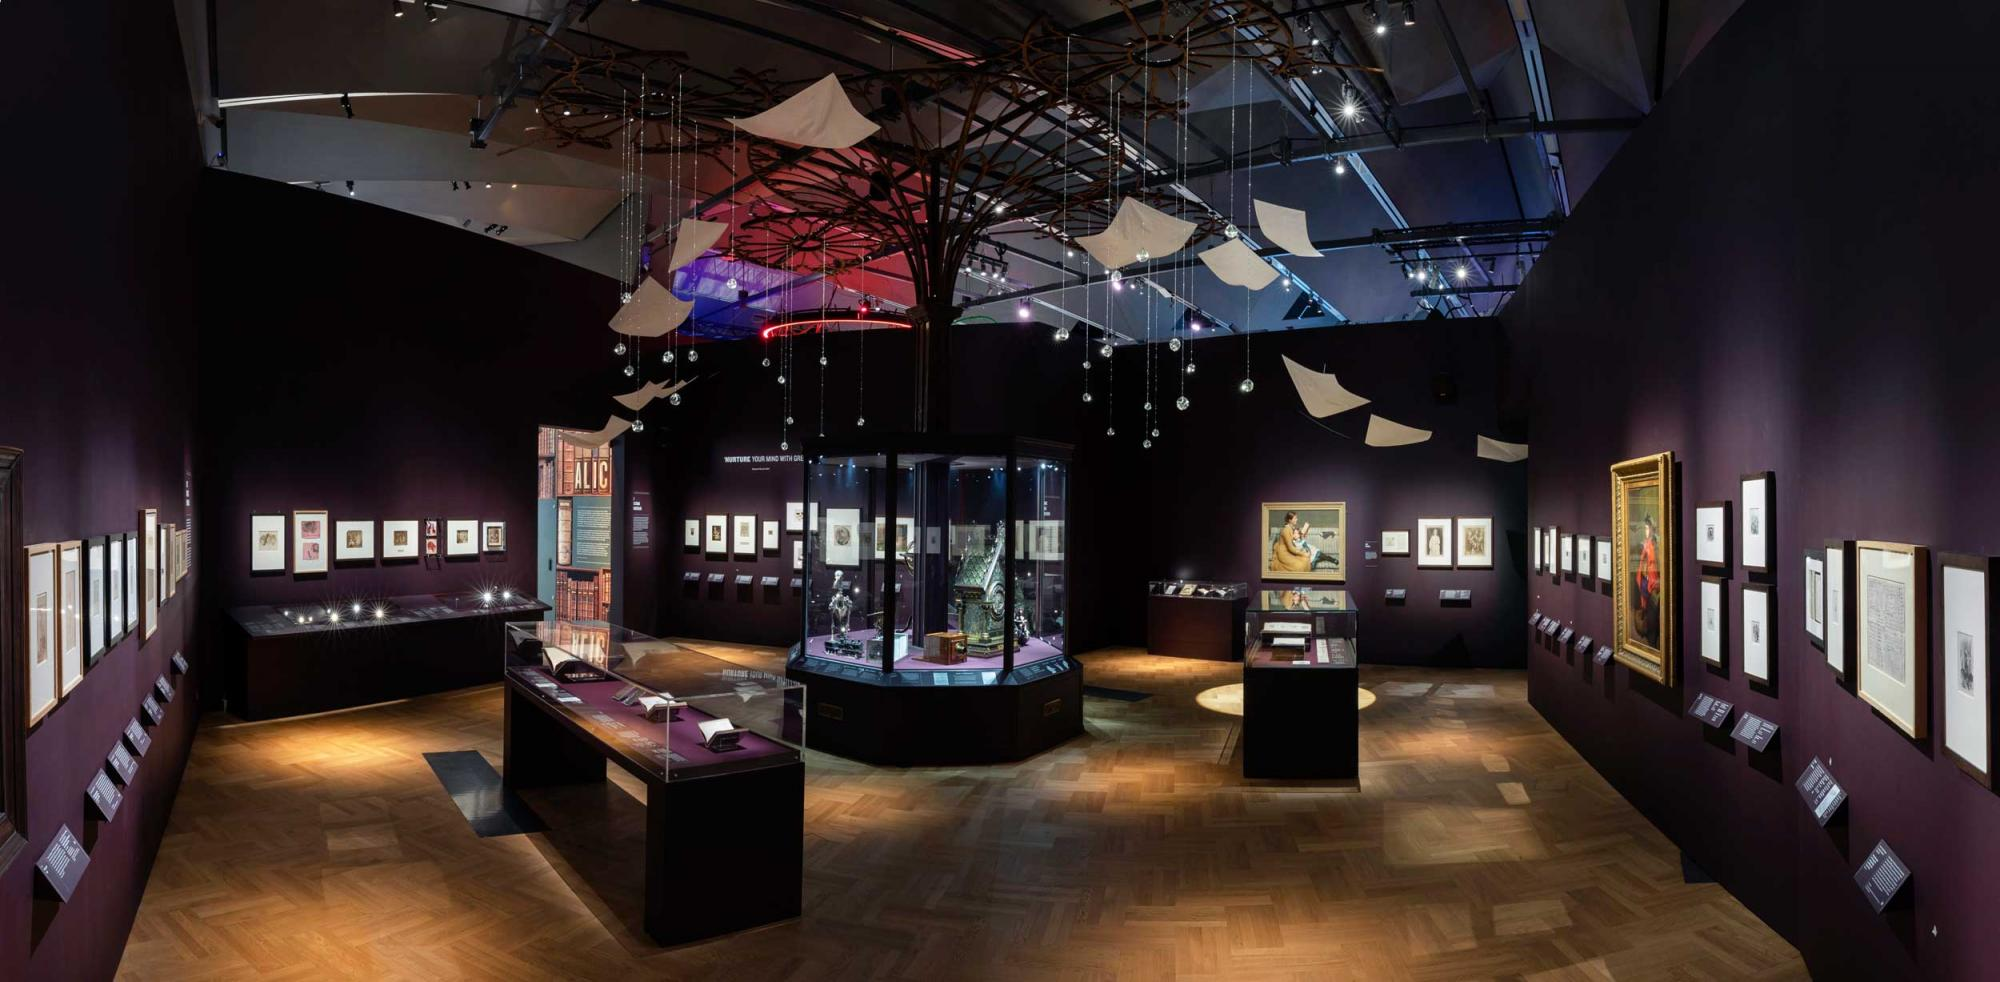 Alice-Curiouser-and-Curiouser,-May-2021,-Installation-Image-(c)-Victoria-and-Albert-Museum,-London.jpg